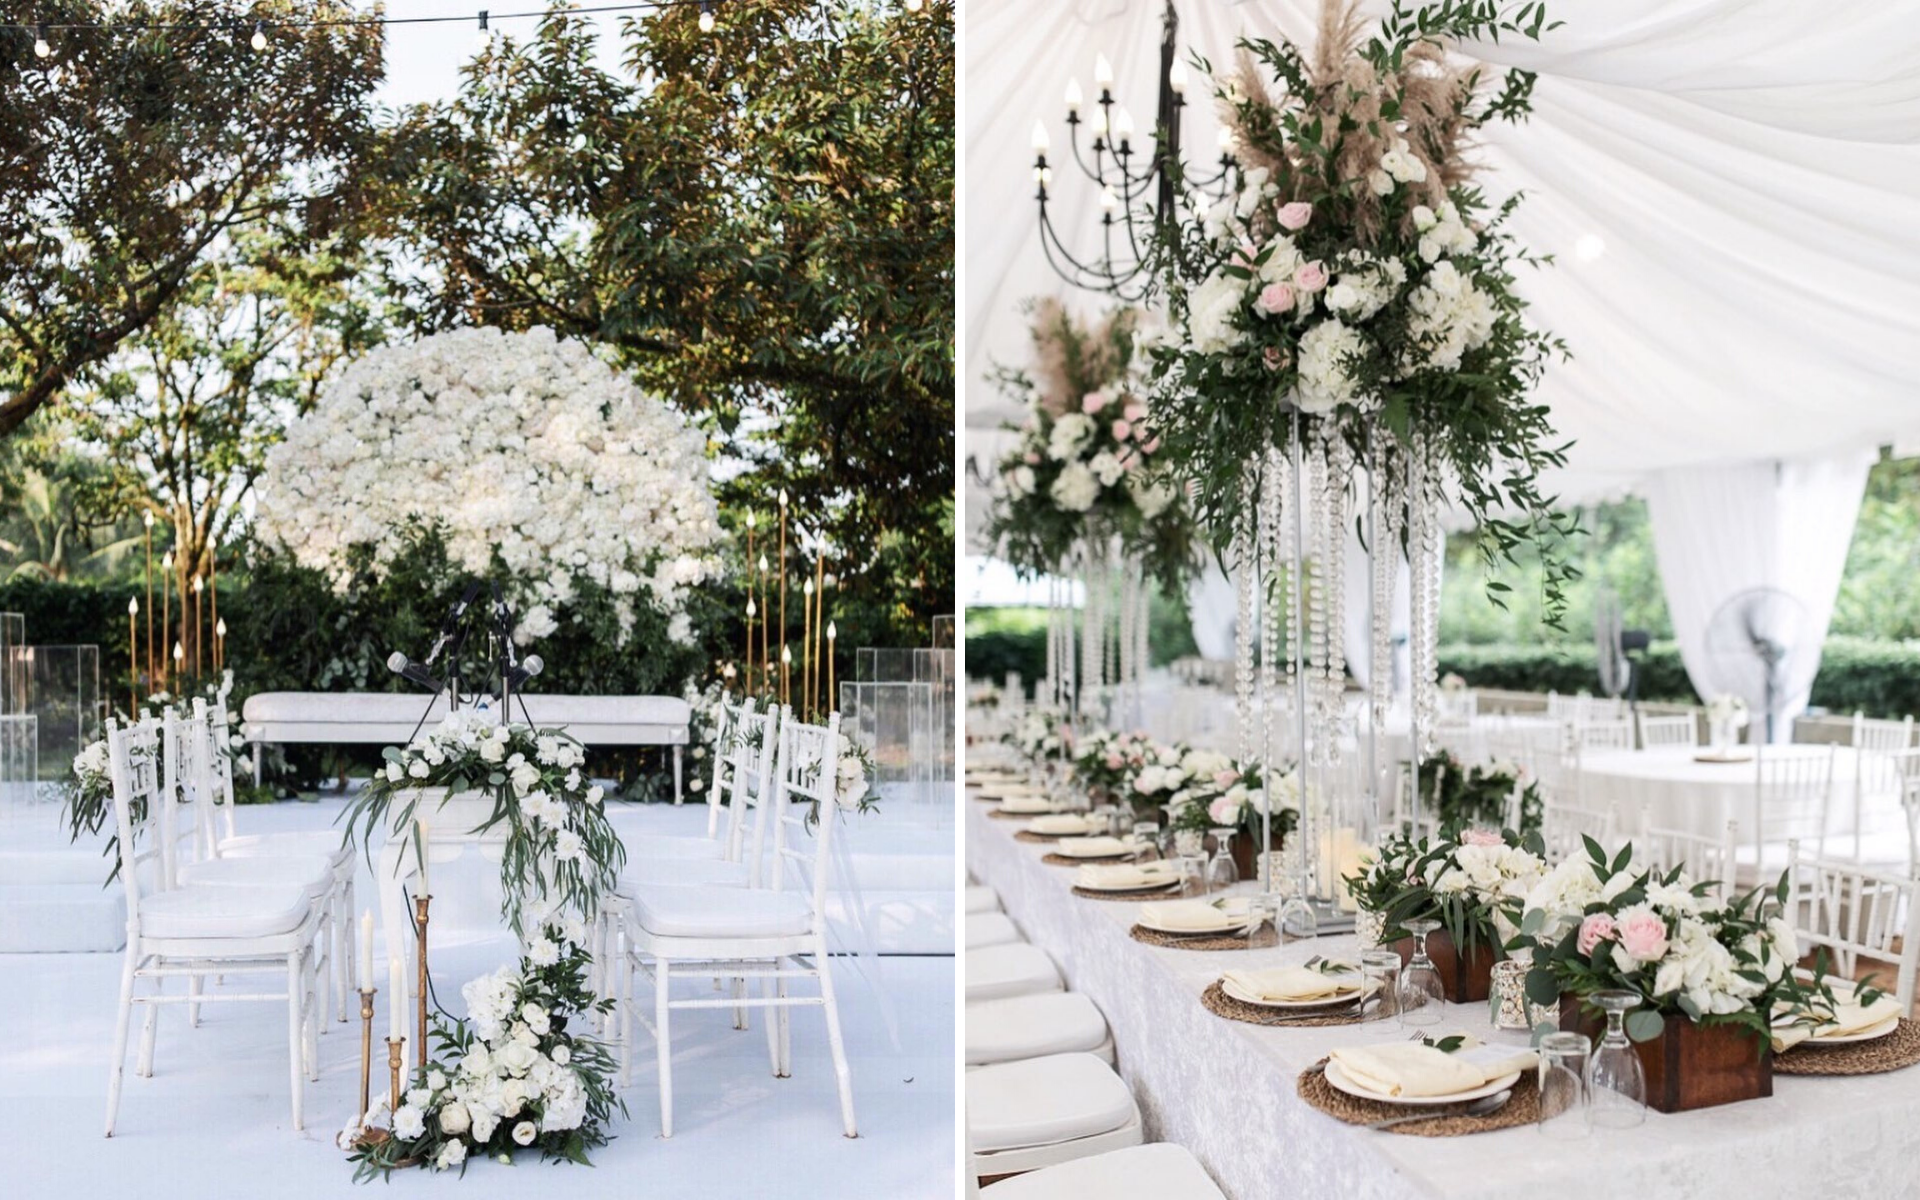 Plan Your Garden Wedding At One Of These Breathtaking Venues | Tatler Malaysia